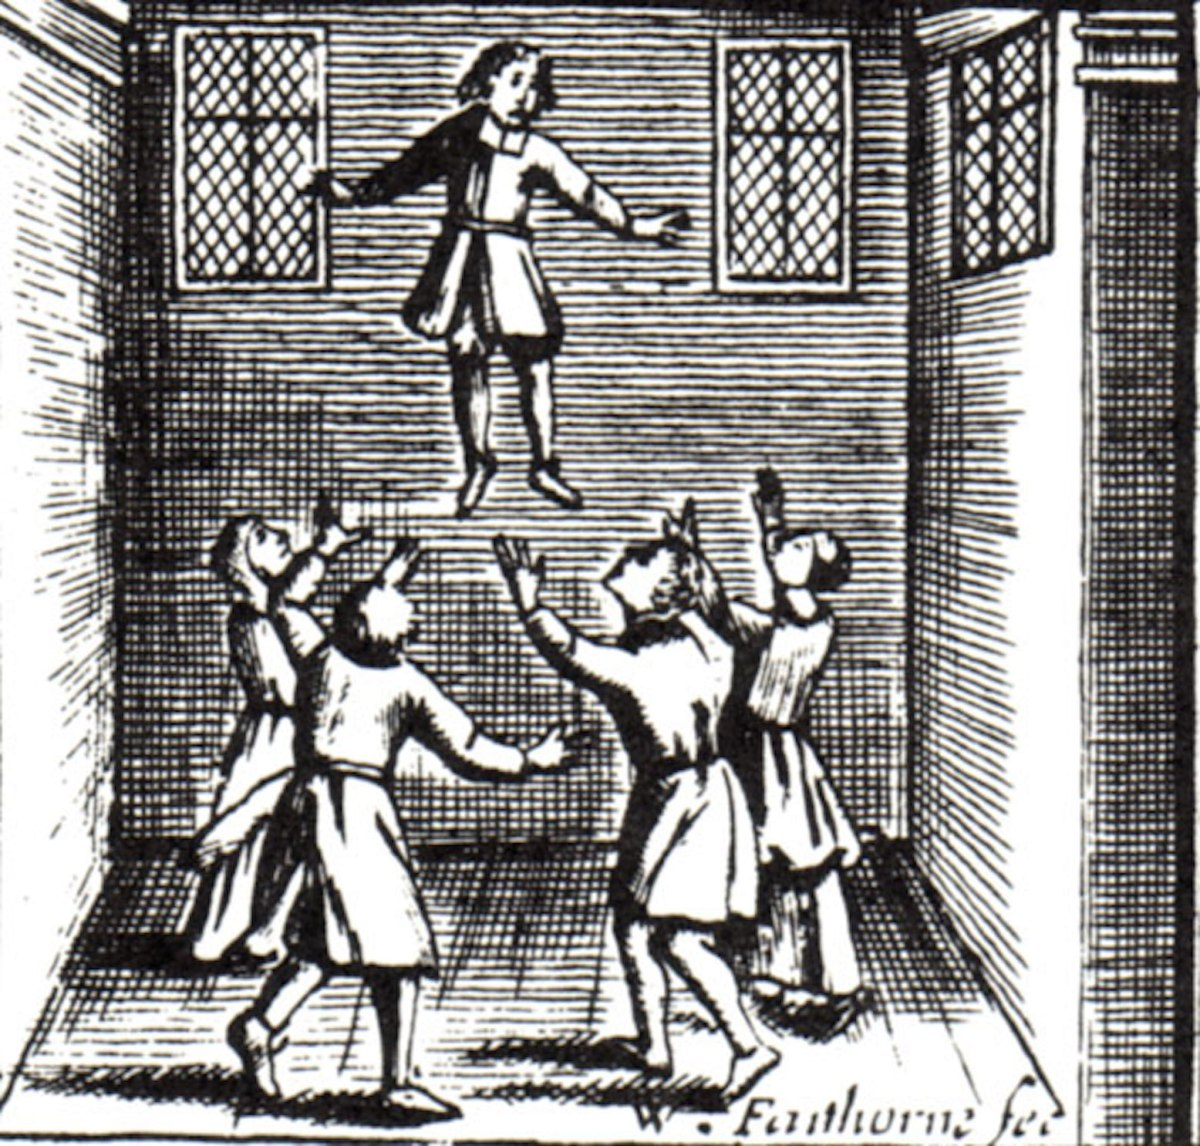 A Levitating Butler and the Faeries – Testimony from 17th-CenturyIreland